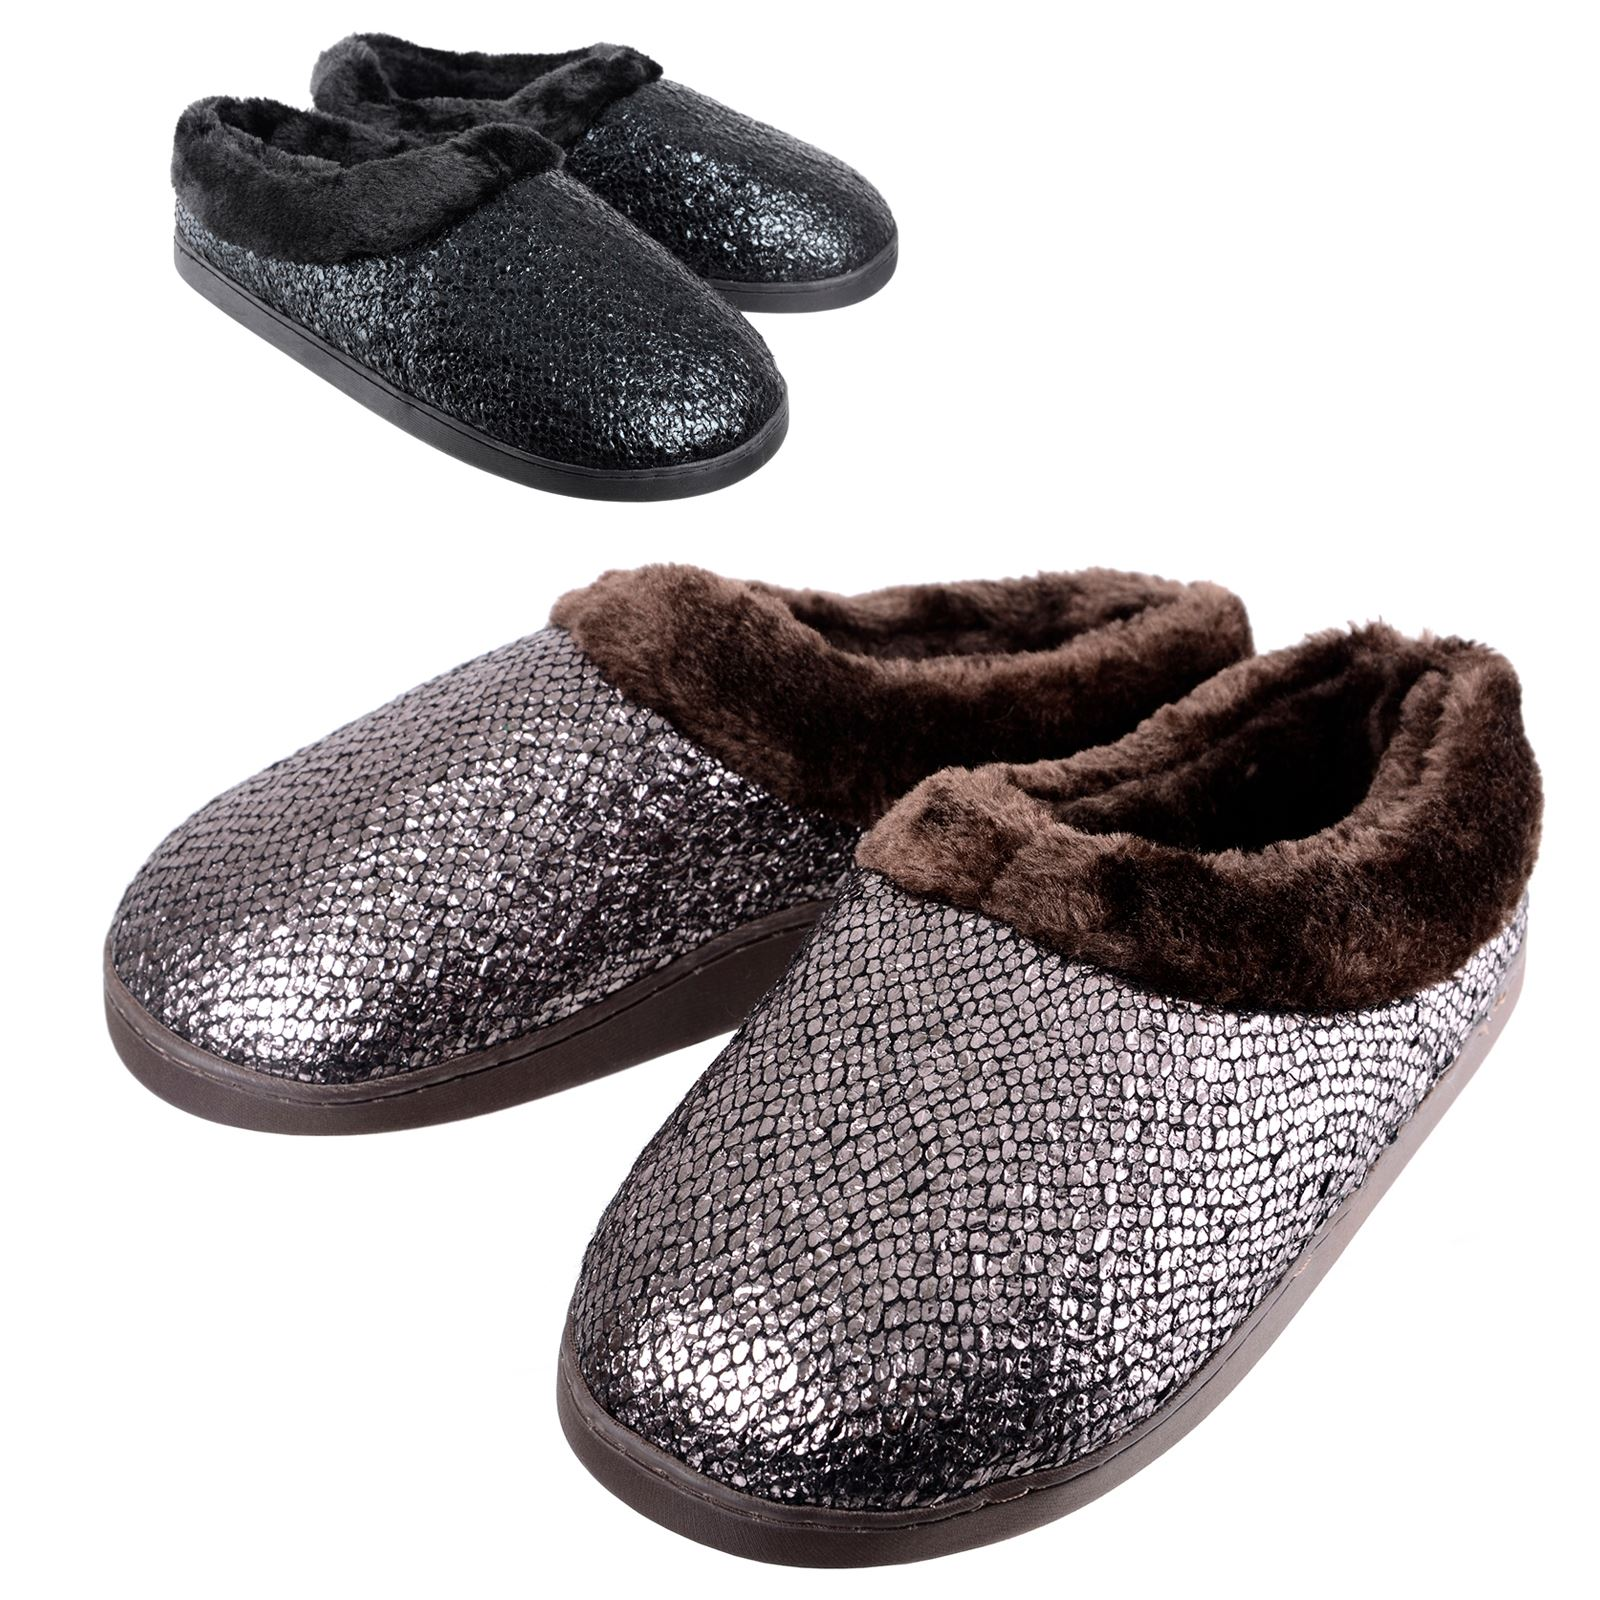 2b08b5354f12 Details about Ladies Sparkle Womens Glitter Slippers Warm Fleece Lining  Non-Slip Hard Soles